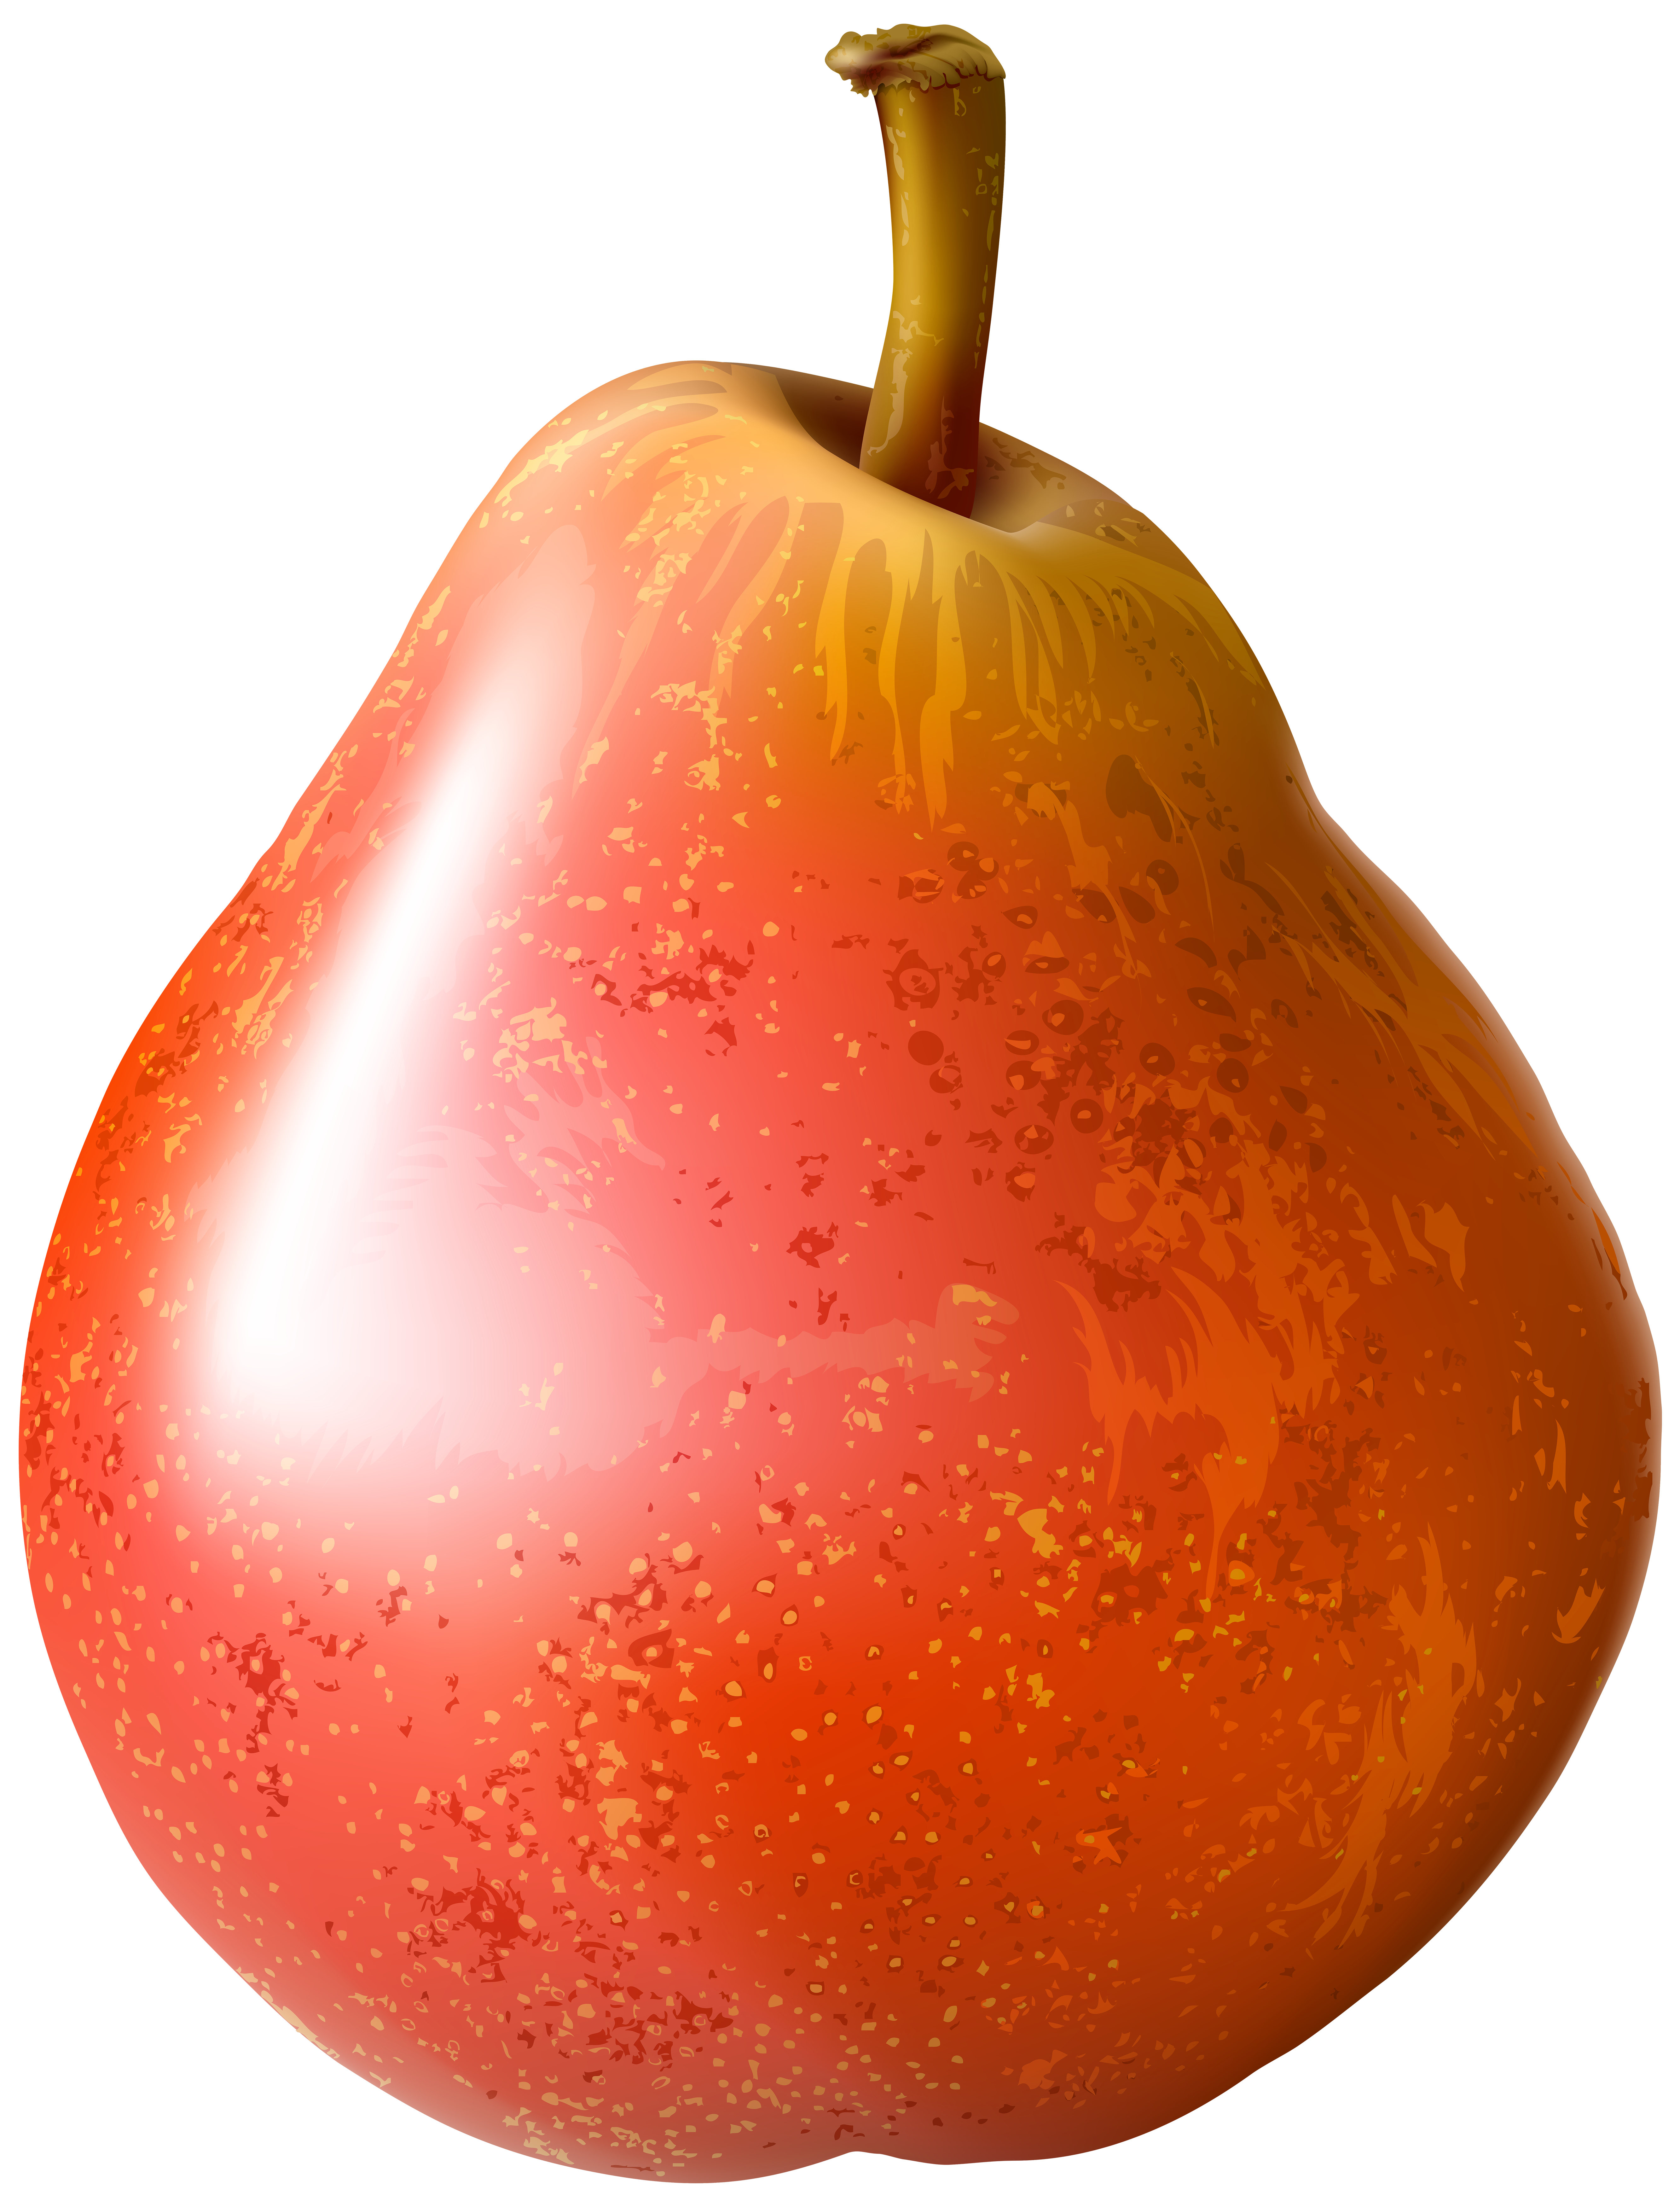 Red png clip art. Pear clipart transparent background